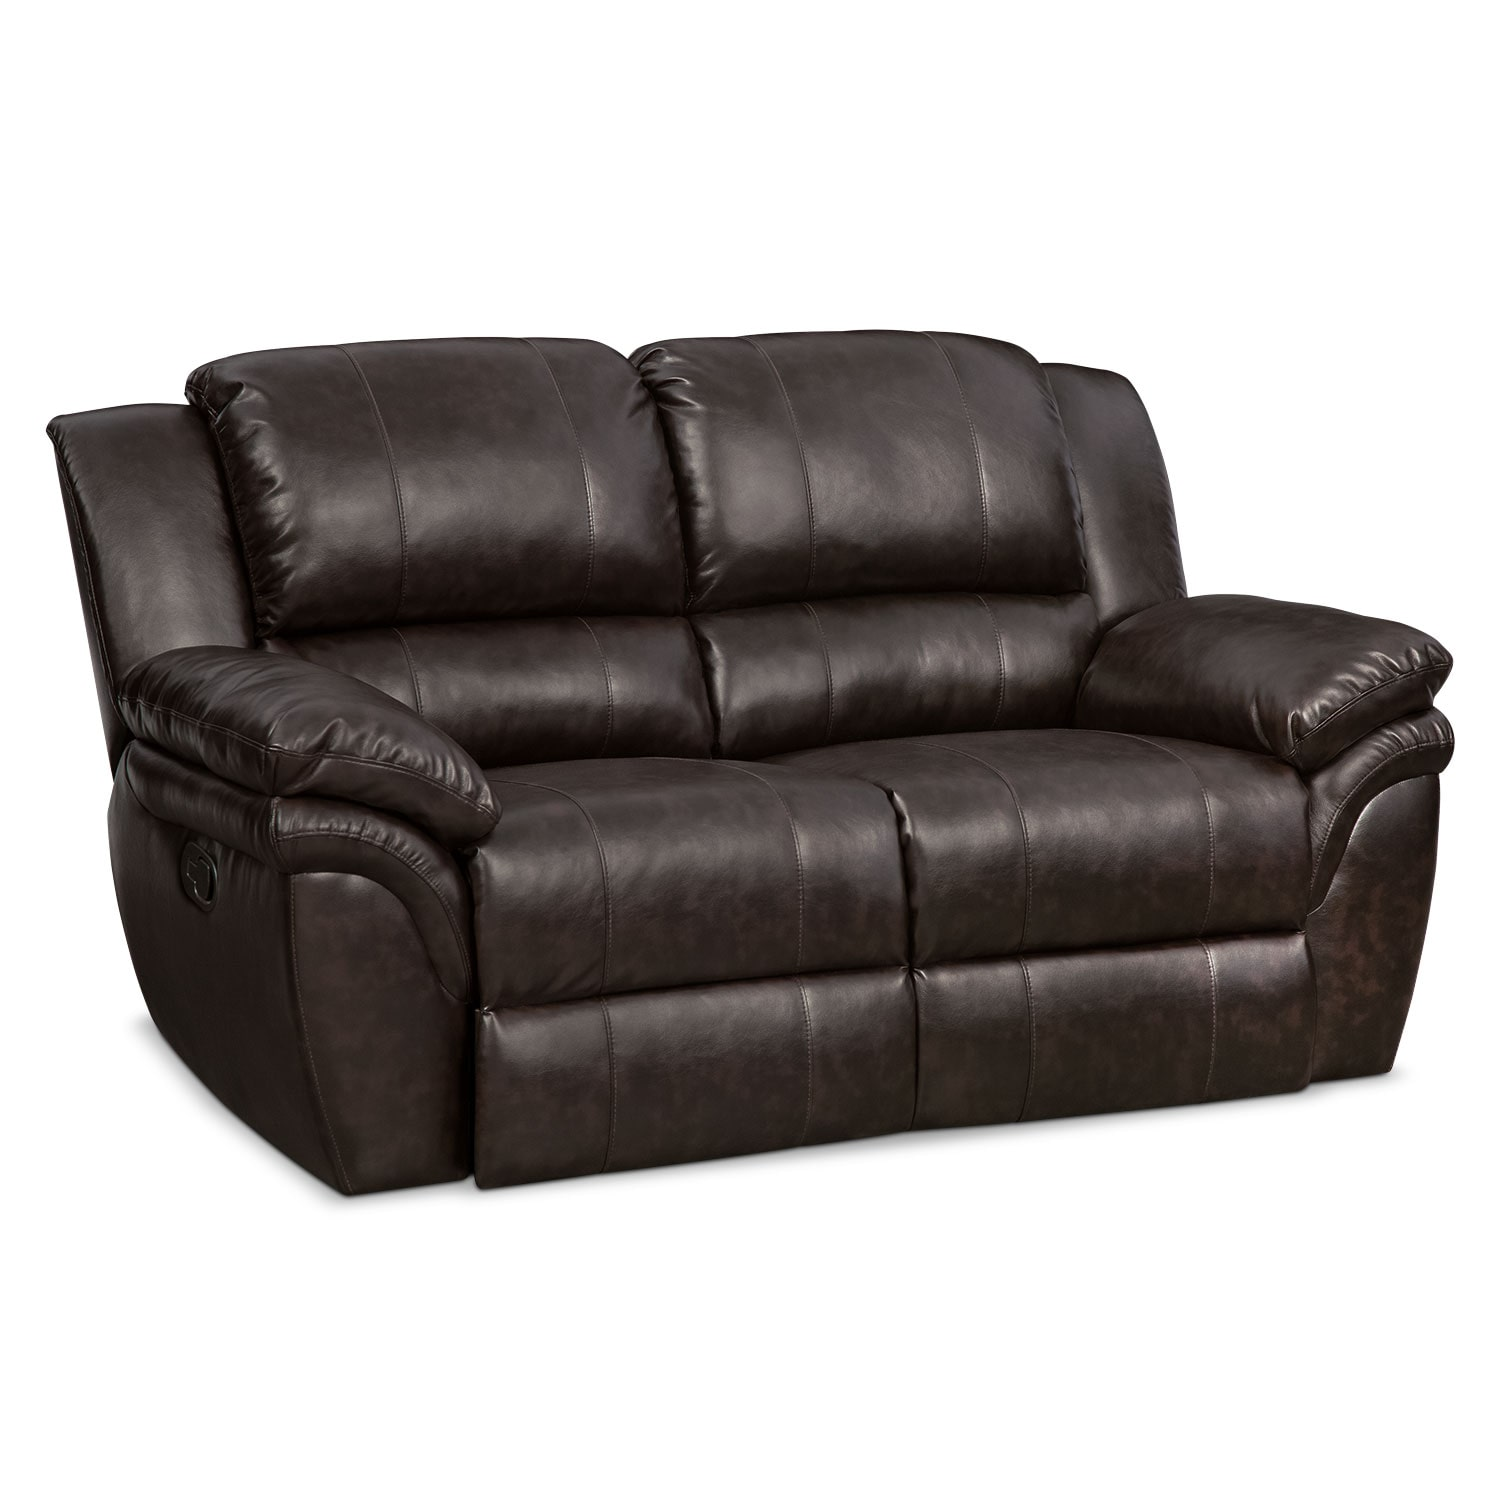 Living Room Furniture - Aldo Manual Reclining Loveseat